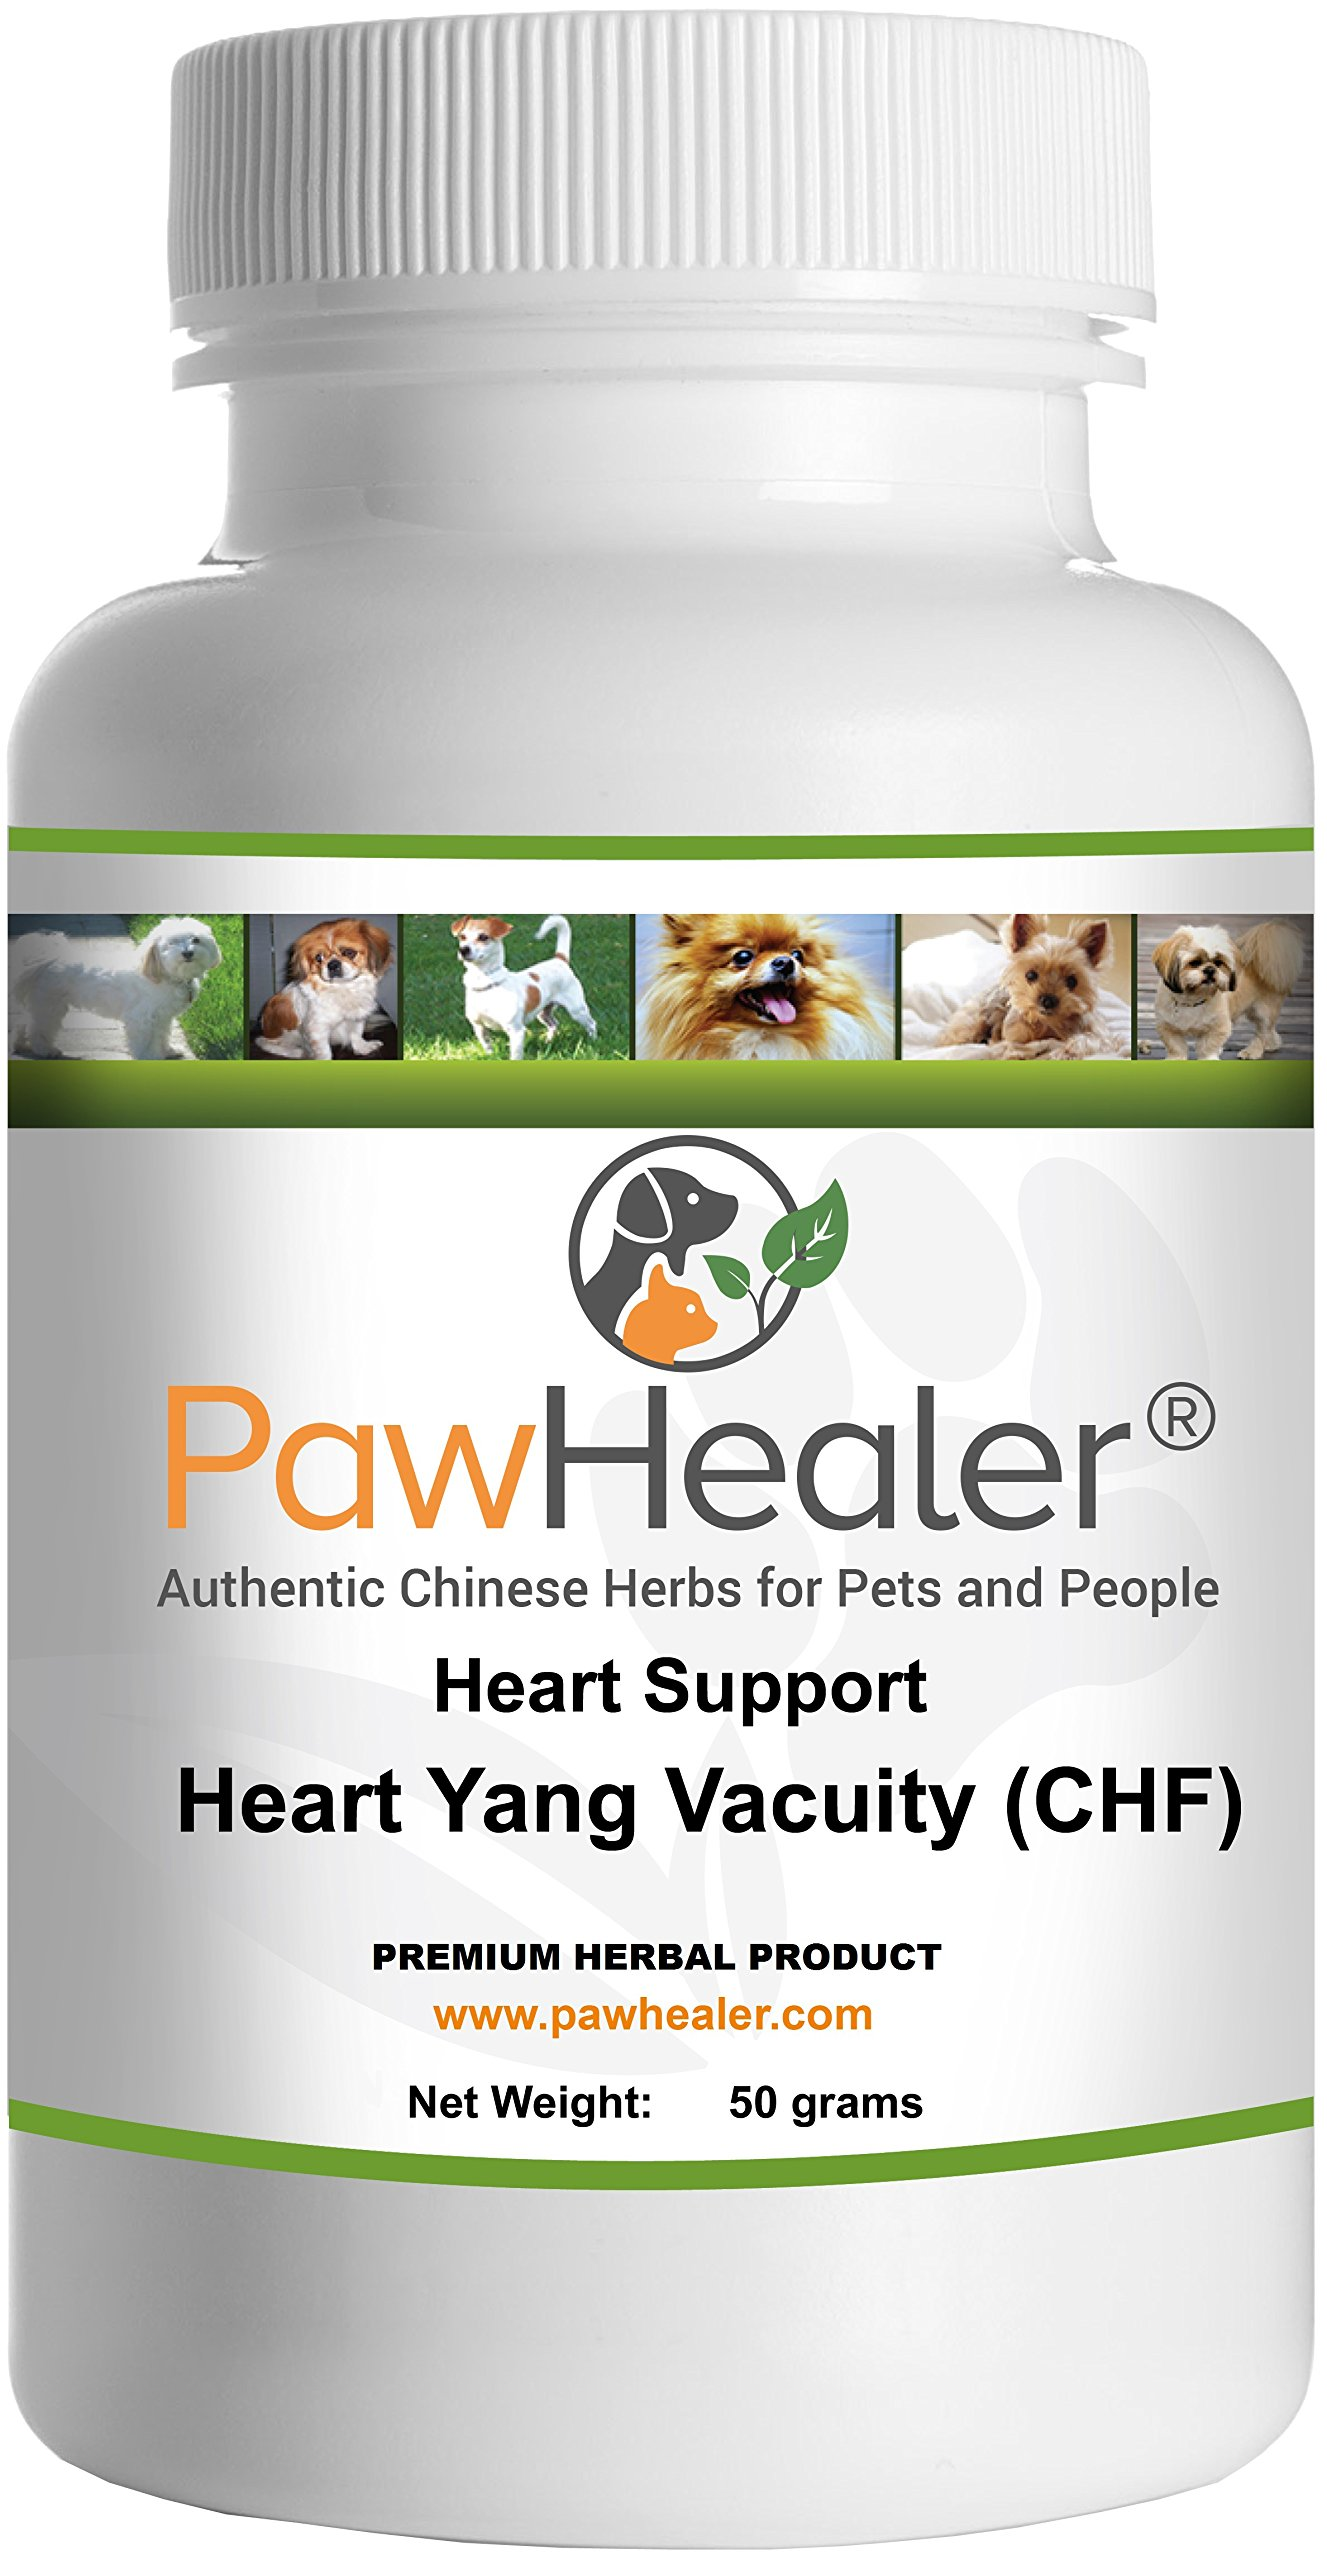 Heart Support - Heart-Yang Vacuity (CHF) - 50 Grams - Coughing, Gagging, Wheezing Due to Heart Condition - 50 Grams-Herbal Powder-Remedy for Dogs & Pets... ... by PawHealer